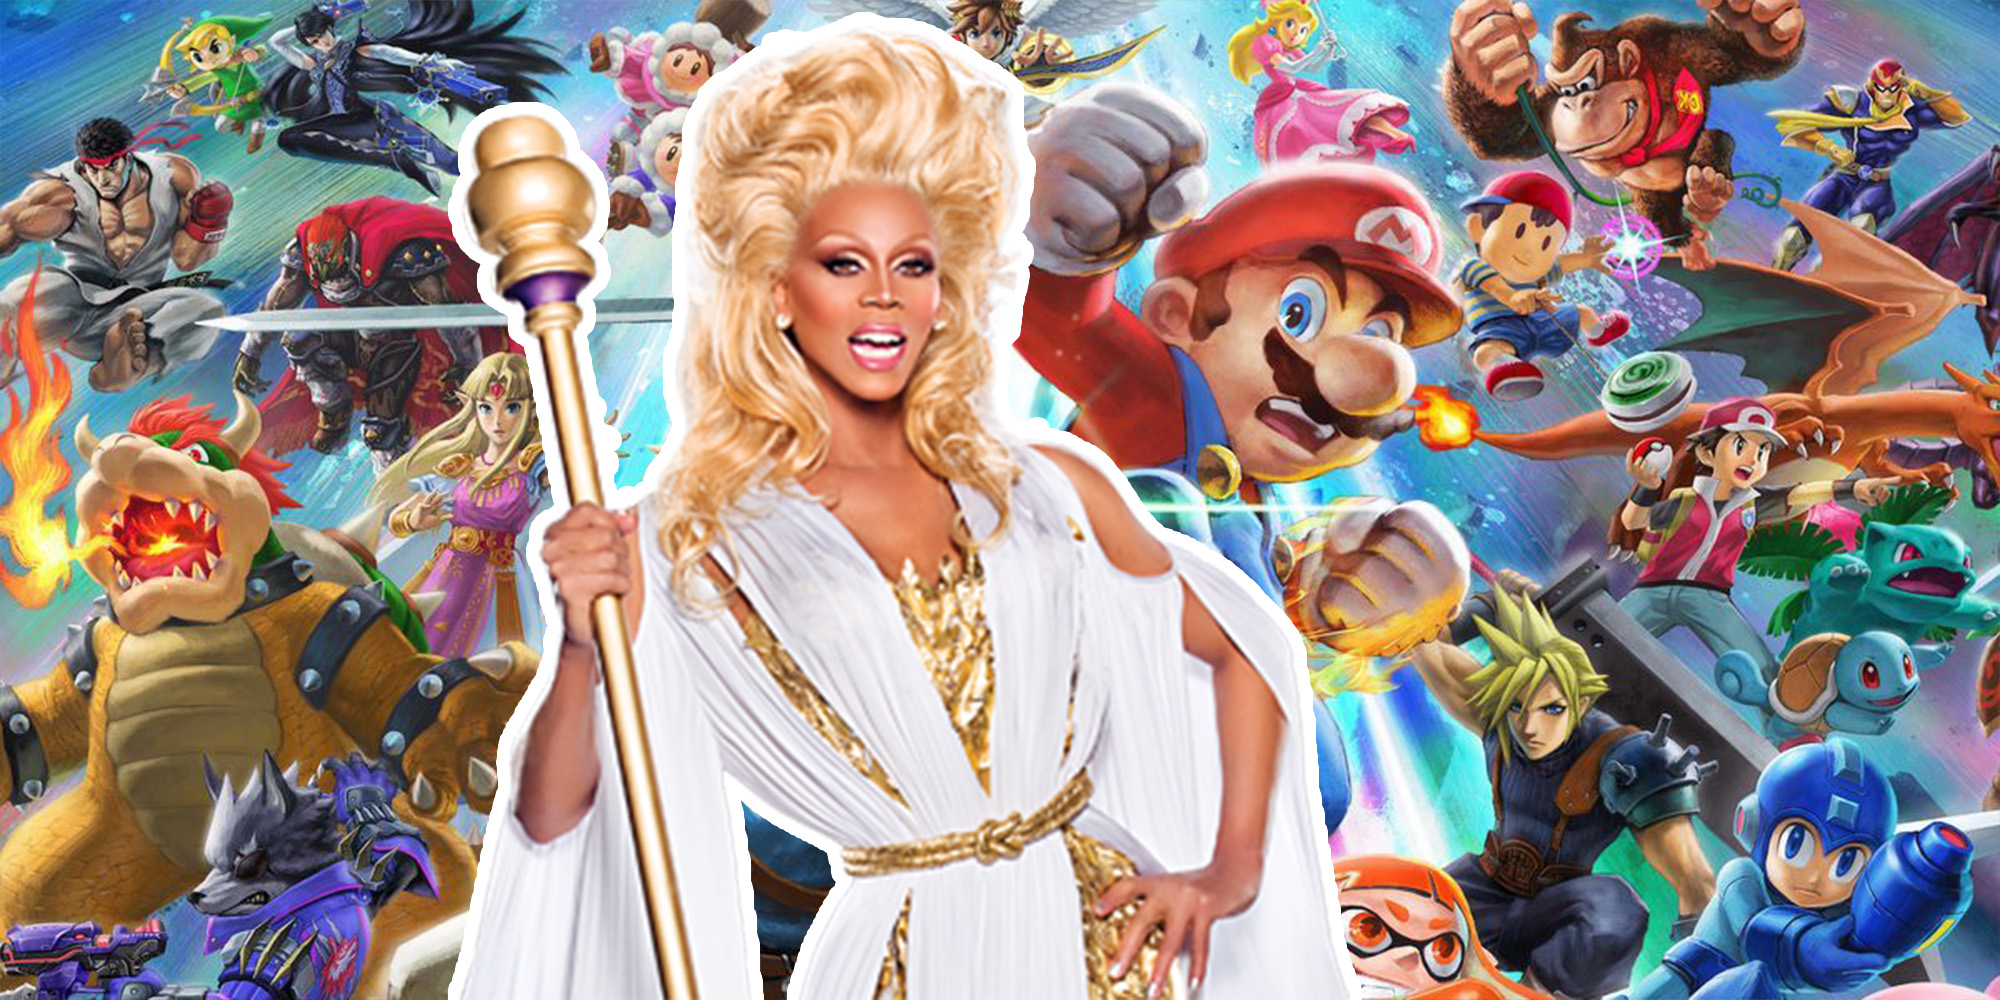 Nintendo's Trailer for 'Super Smash Bros. Ultimate' Is Better With This RuPaul Soundtrack